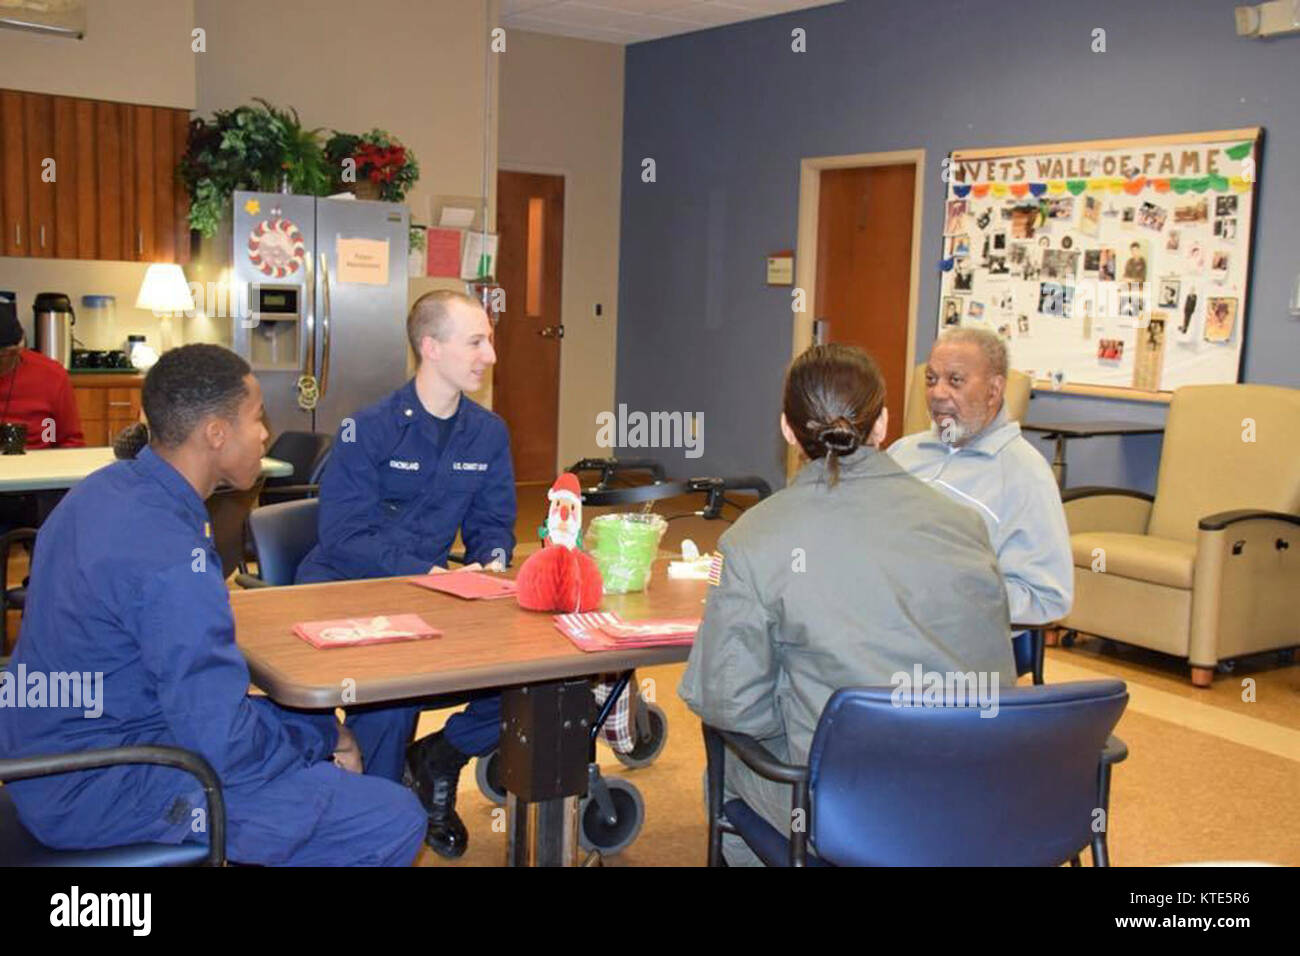 veterans administration adult day care